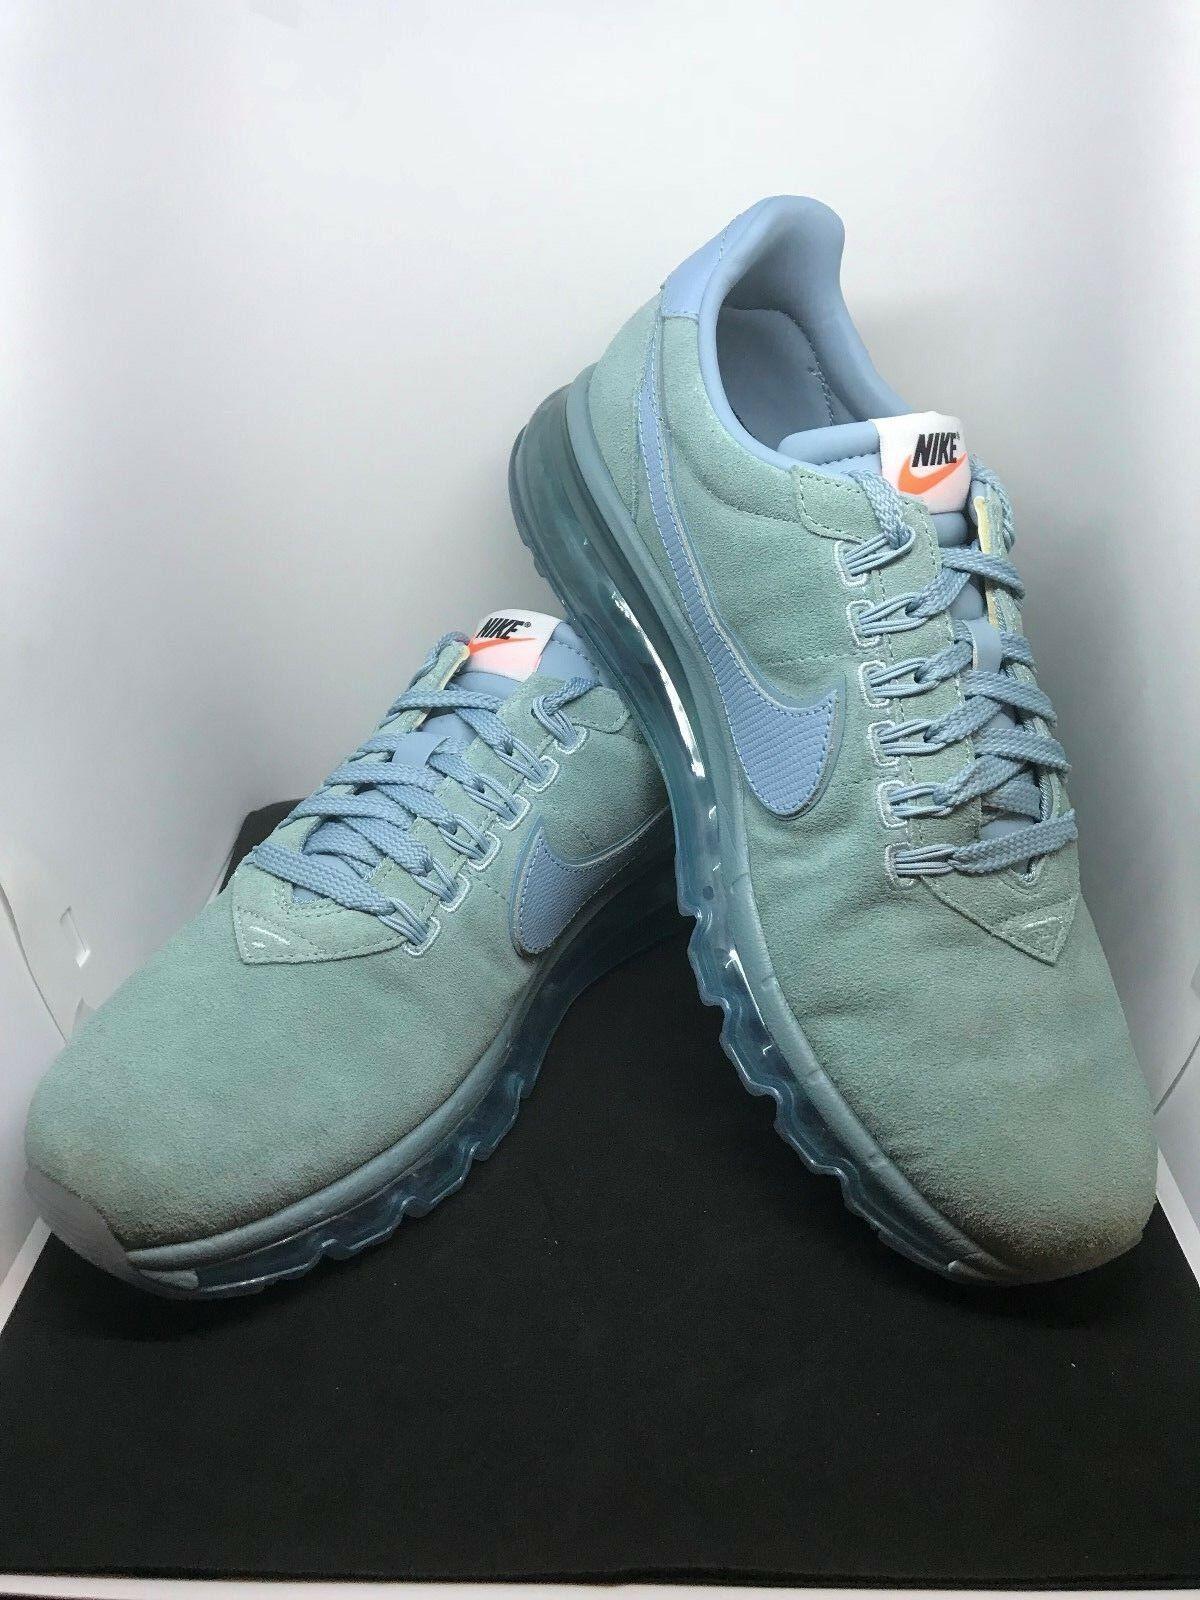 Nike Air Air Air Max LD Zero iD Women's Running shoes   Aqua bluee  Size 11 (AA3174-991) 4fa15a